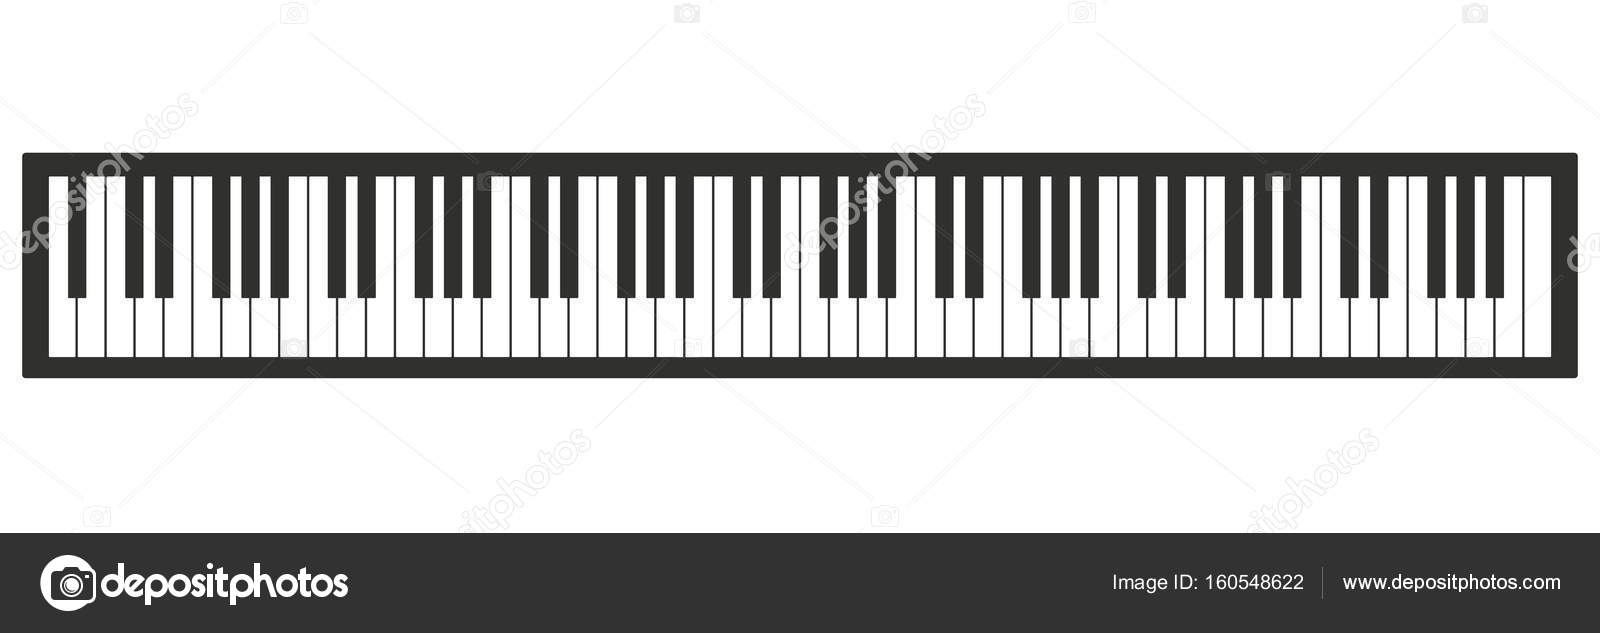 Piano Keyboard Vector Illustration 88 Keys Of Stock